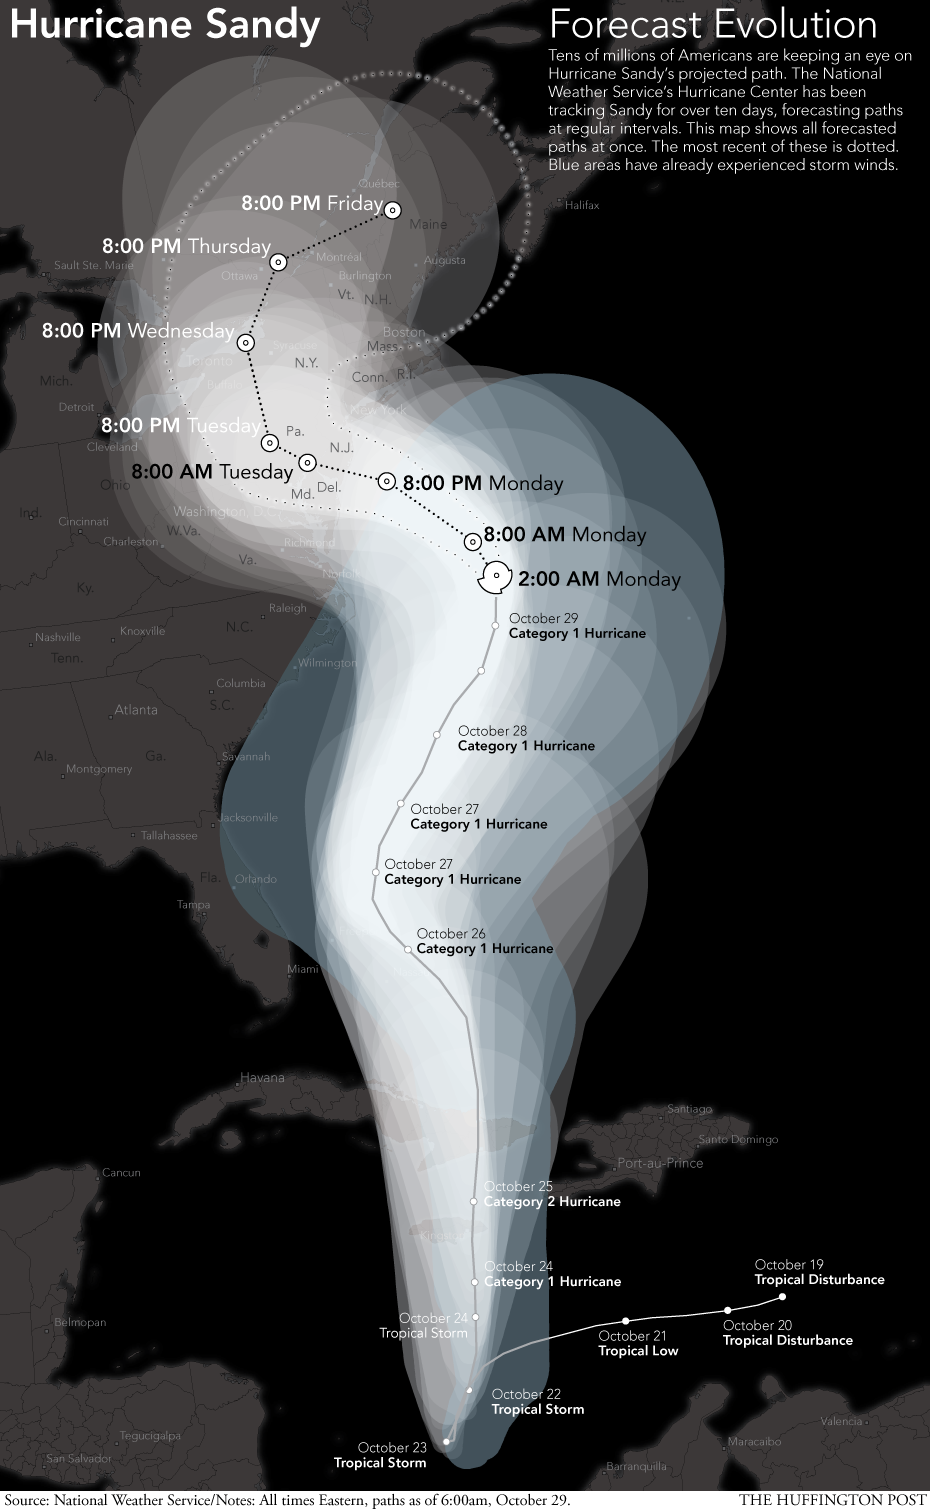 hurricane-sandy-forecast-evolution-map